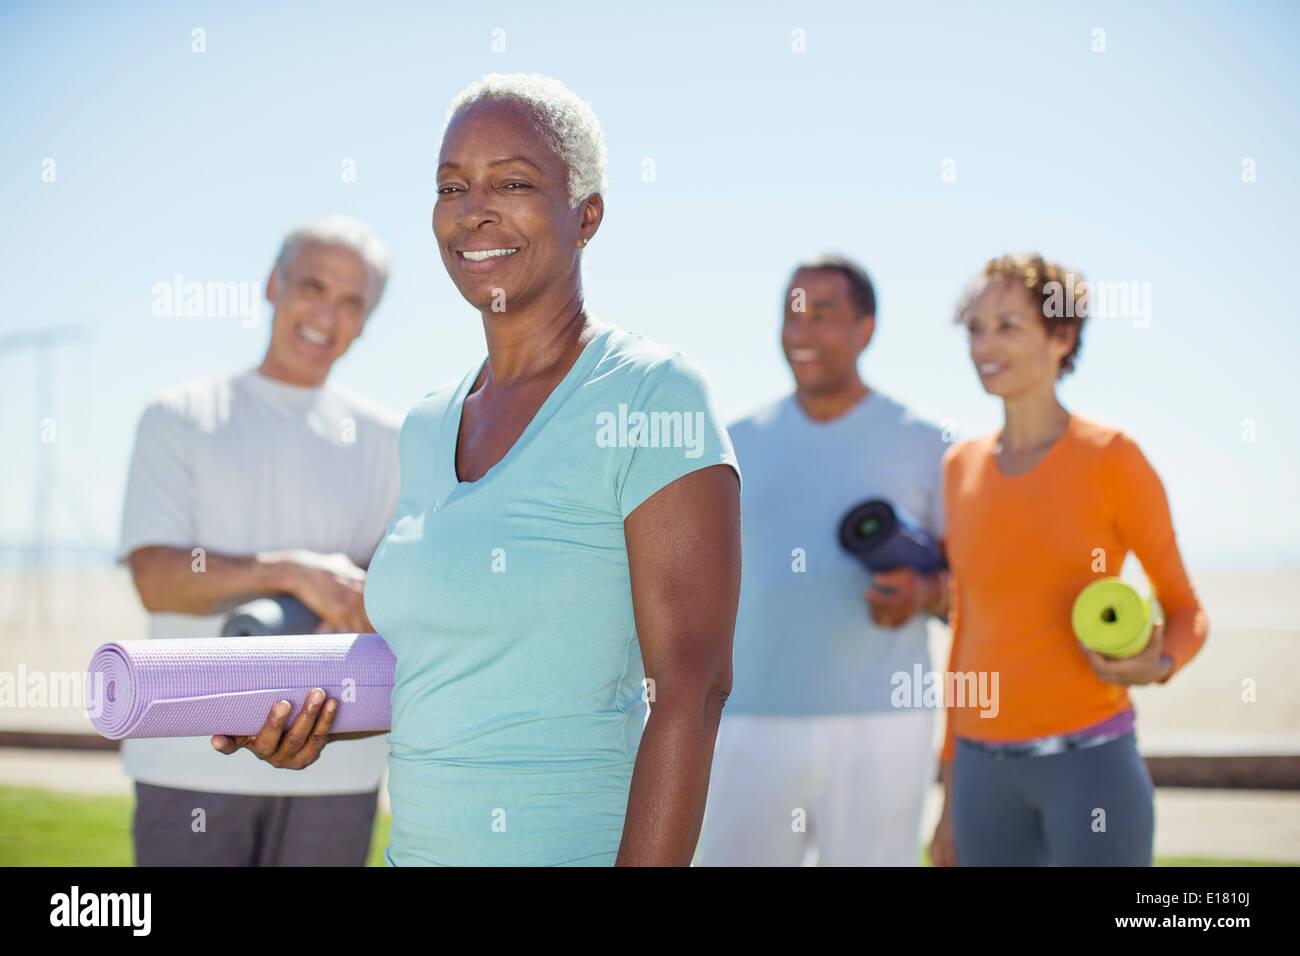 Portrait of confident senior woman with yoga mat in park - Stock Image